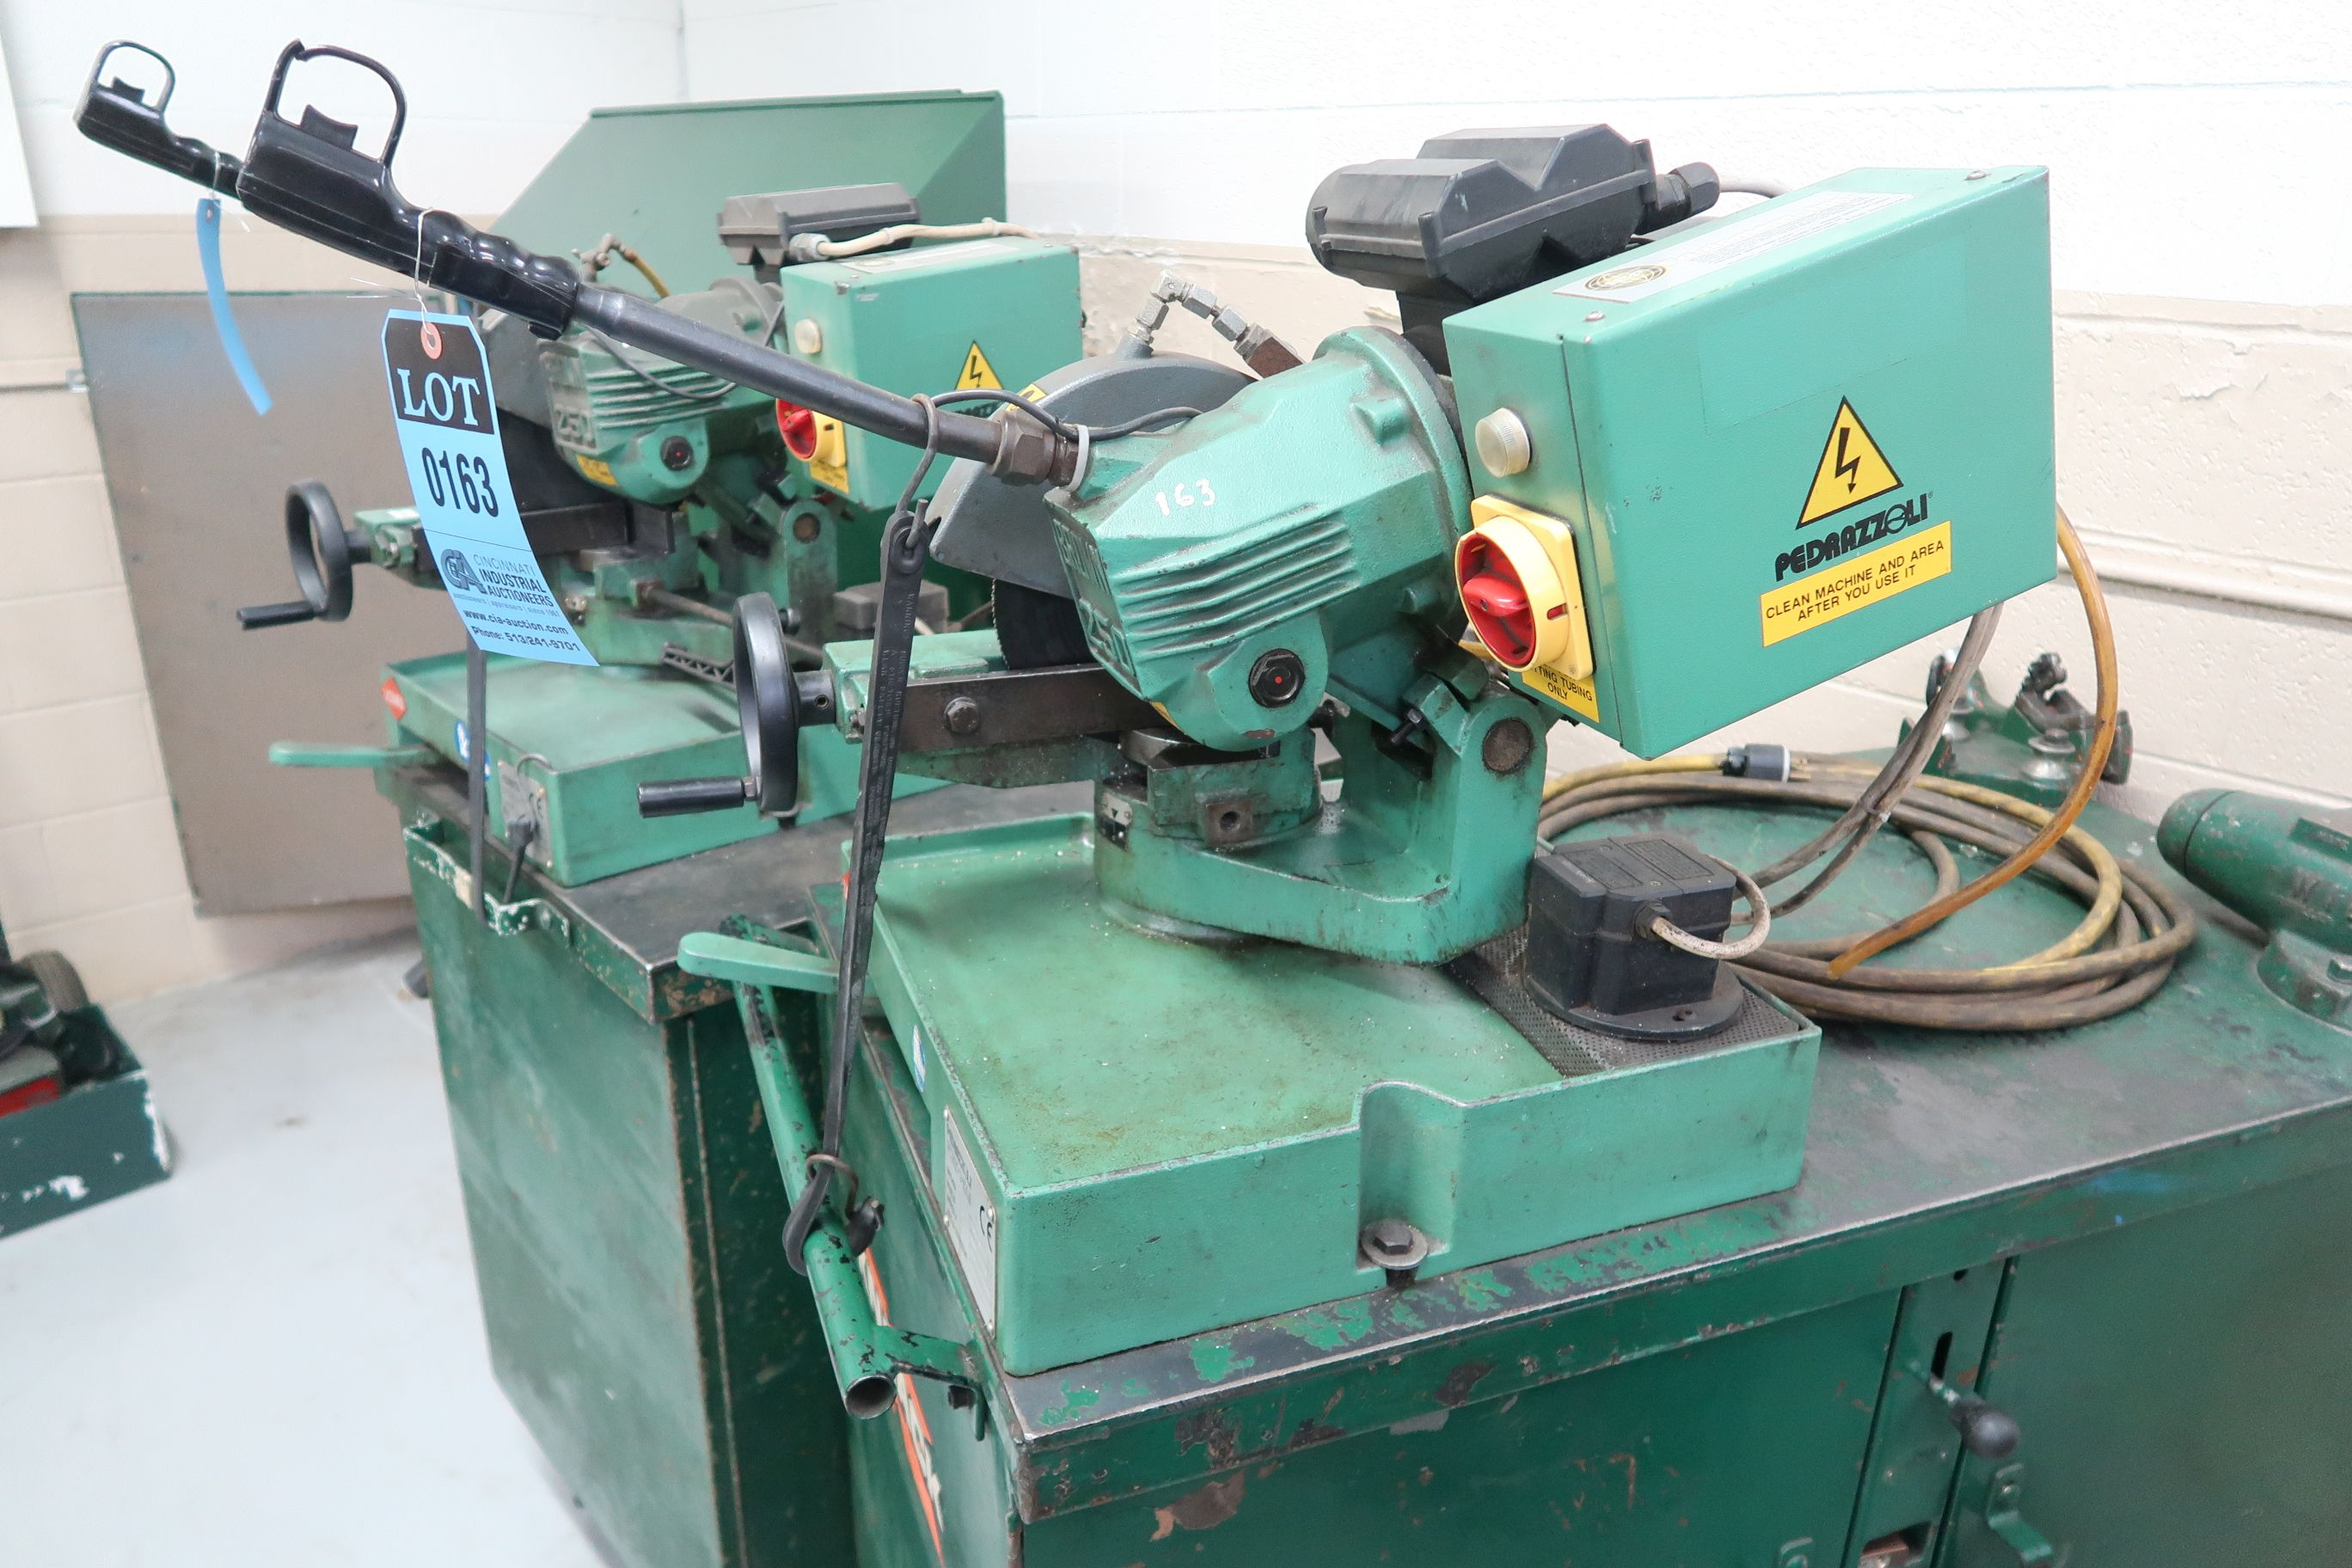 BROWN MODEL 250 TABLE MOUNTED SAW; S/N 034447, MOUNTED ON PORTABLE JOBBOX WITH 4-1/2 BENCH VISE - Image 2 of 5